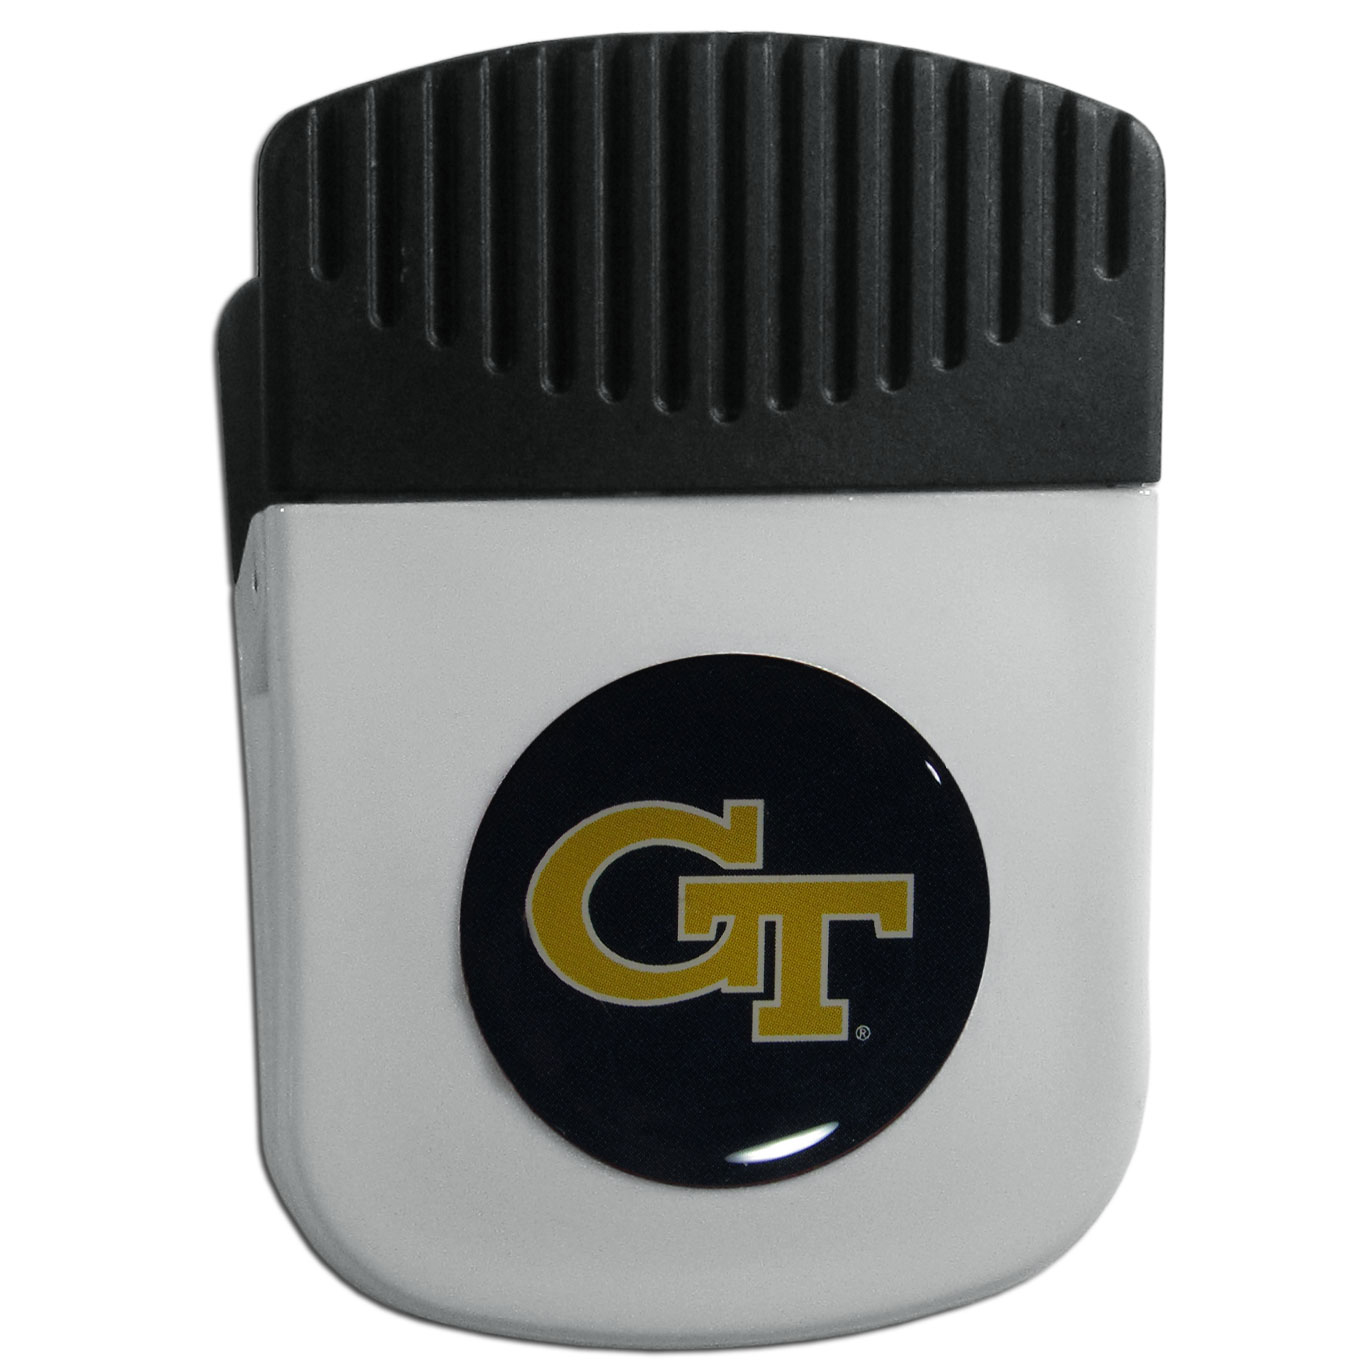 Georgia Tech Yellow Jackets Chip Clip Magnet - Use this attractive clip magnet to hold memos, photos or appointment cards on the fridge or take it down keep use it to clip bags shut. The magnet features a domed Georgia Tech Yellow Jackets logo.